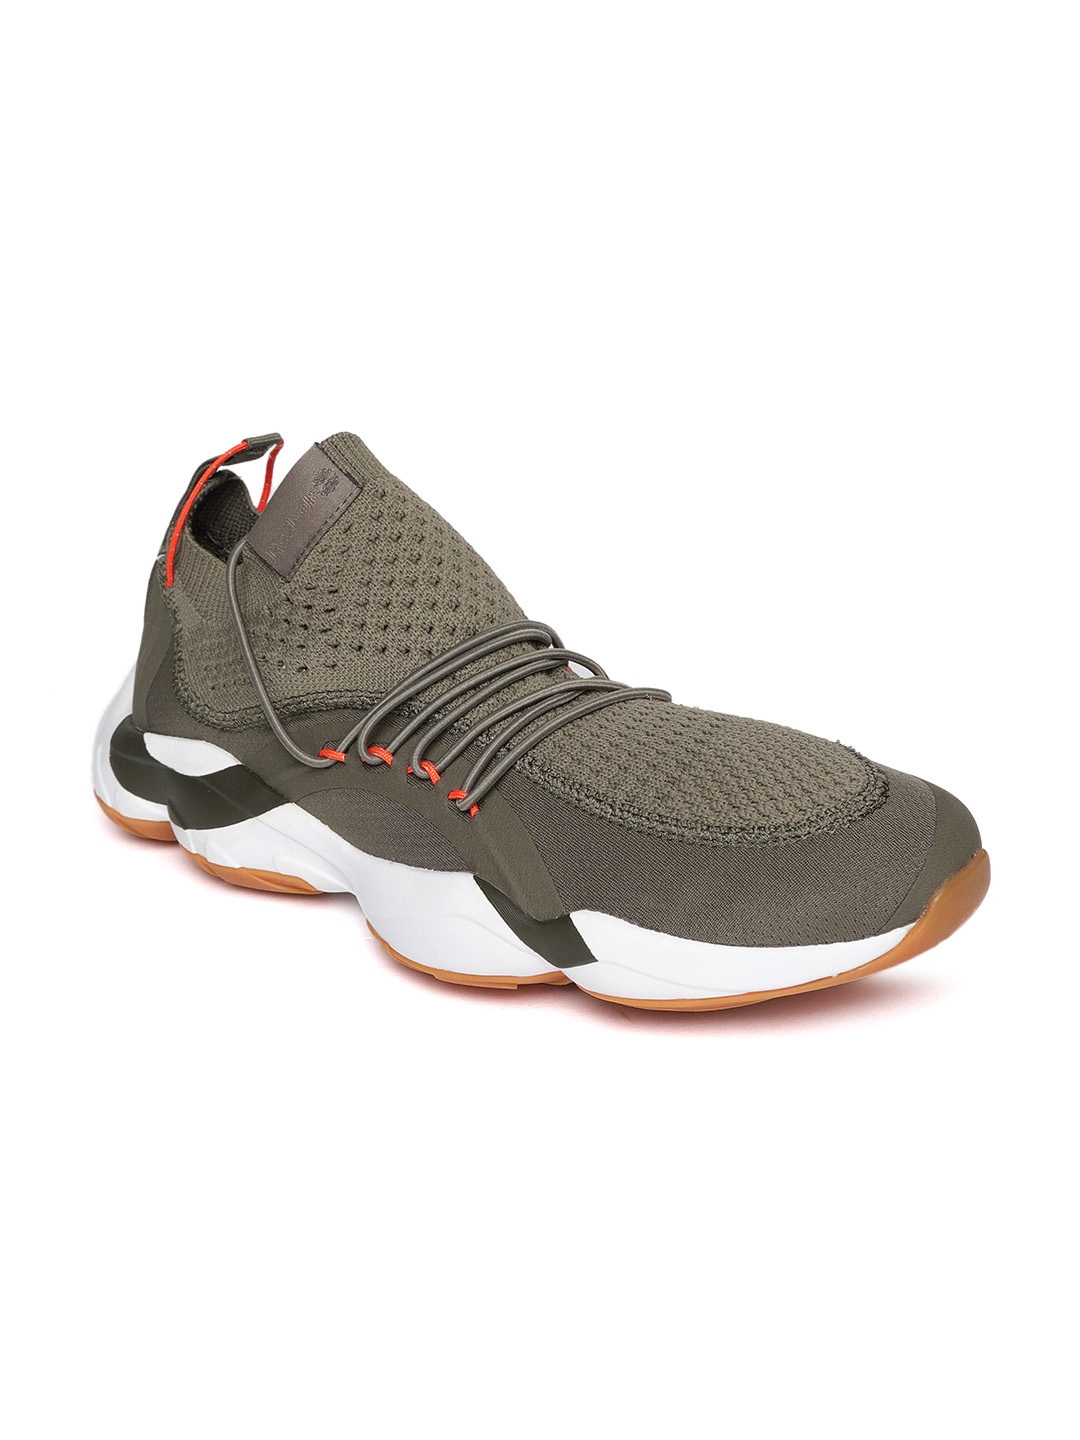 Buy Reebok Classic Unisex Taupe DMX Fusion Patterned Running Shoes ... 0d25626cd